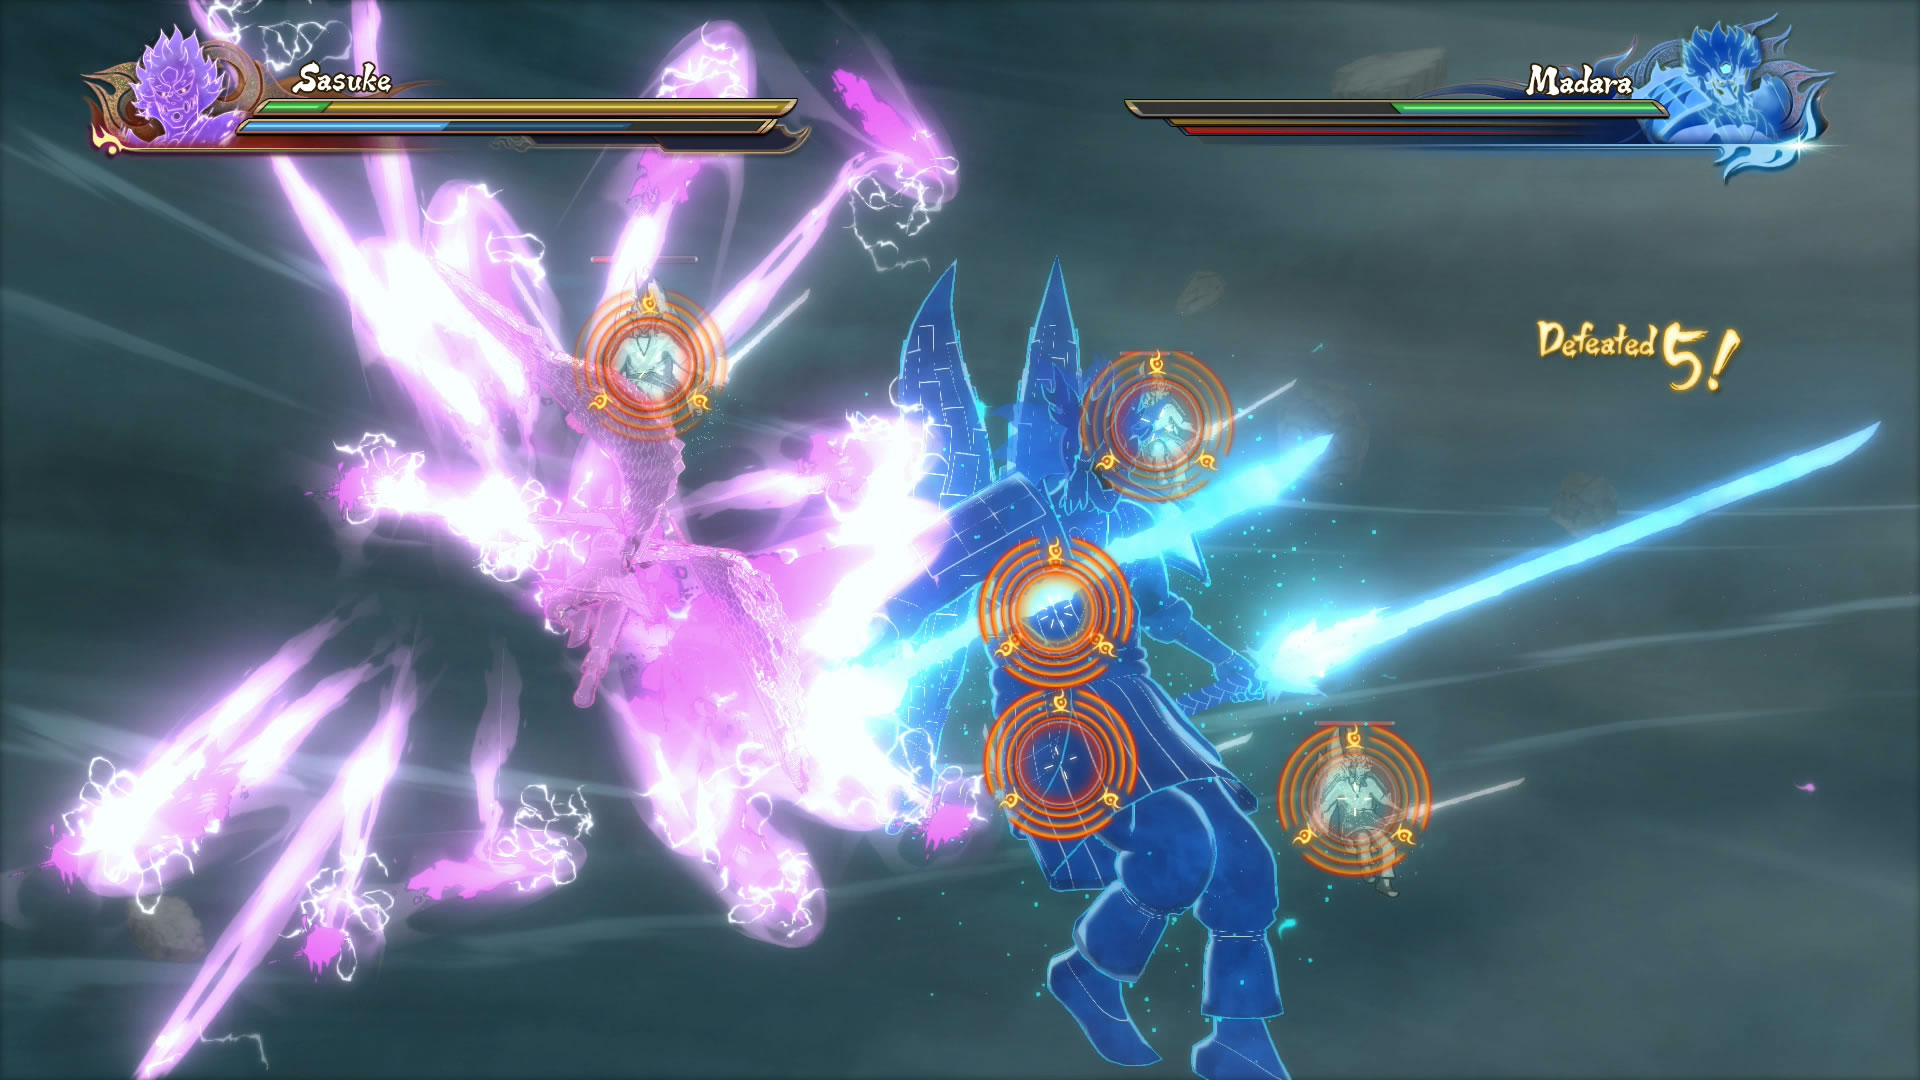 Naruto Shippuden Ultimate Ninja Storm 4 Gameplay Screenshot 2016-02-04 23-32-44